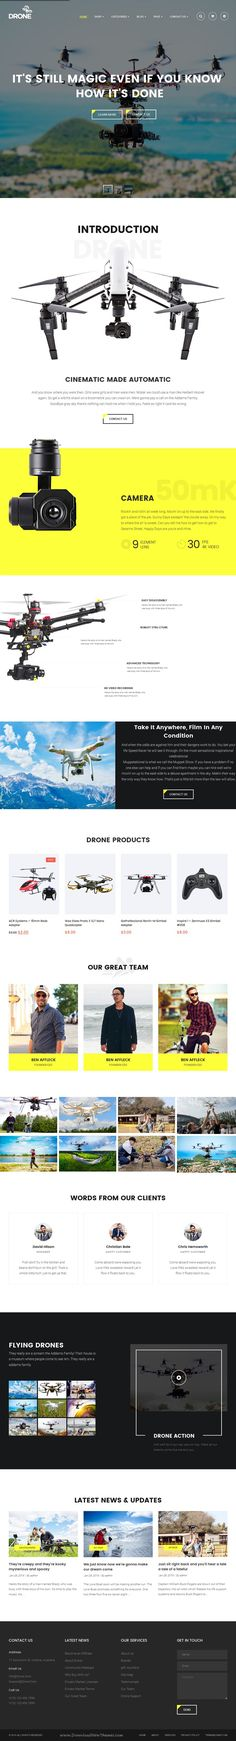 Drone is wonderful Single Product #WordPress theme built with #WooCommerce platform comes with 3 amazing pre-built homepage layouts. #webdesign Download Now!